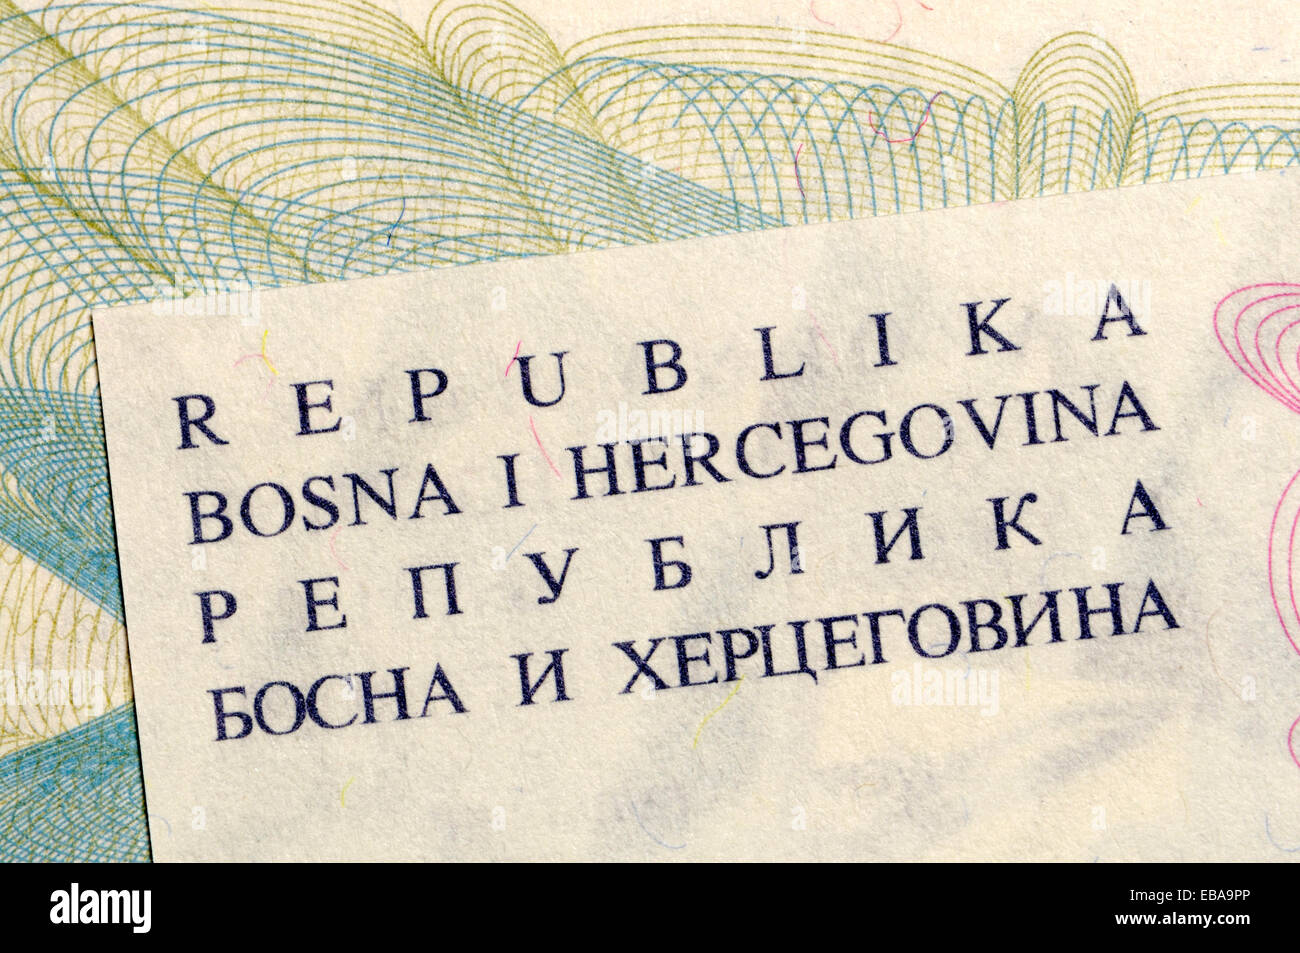 Detail from a Bosnian banknote showing Republic of Bosnia and Herzegovina in Latin and Cyrillic script - Stock Image